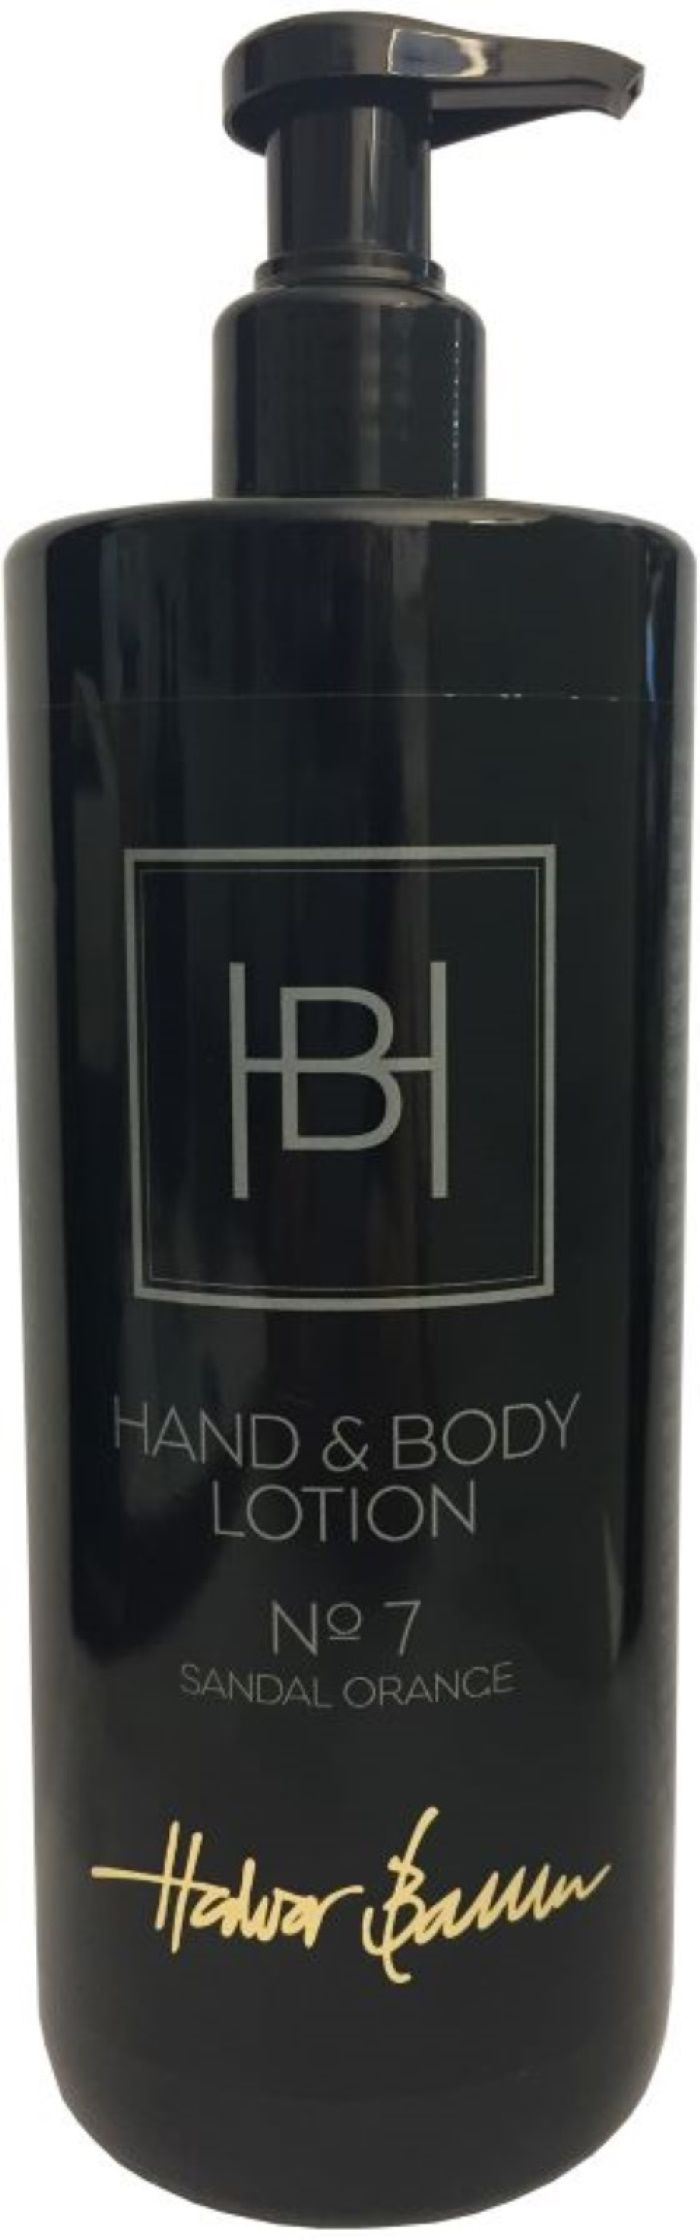 Halvor Bakke Hand/Body Lotion No7 Sandal-Orange (594-HB701)